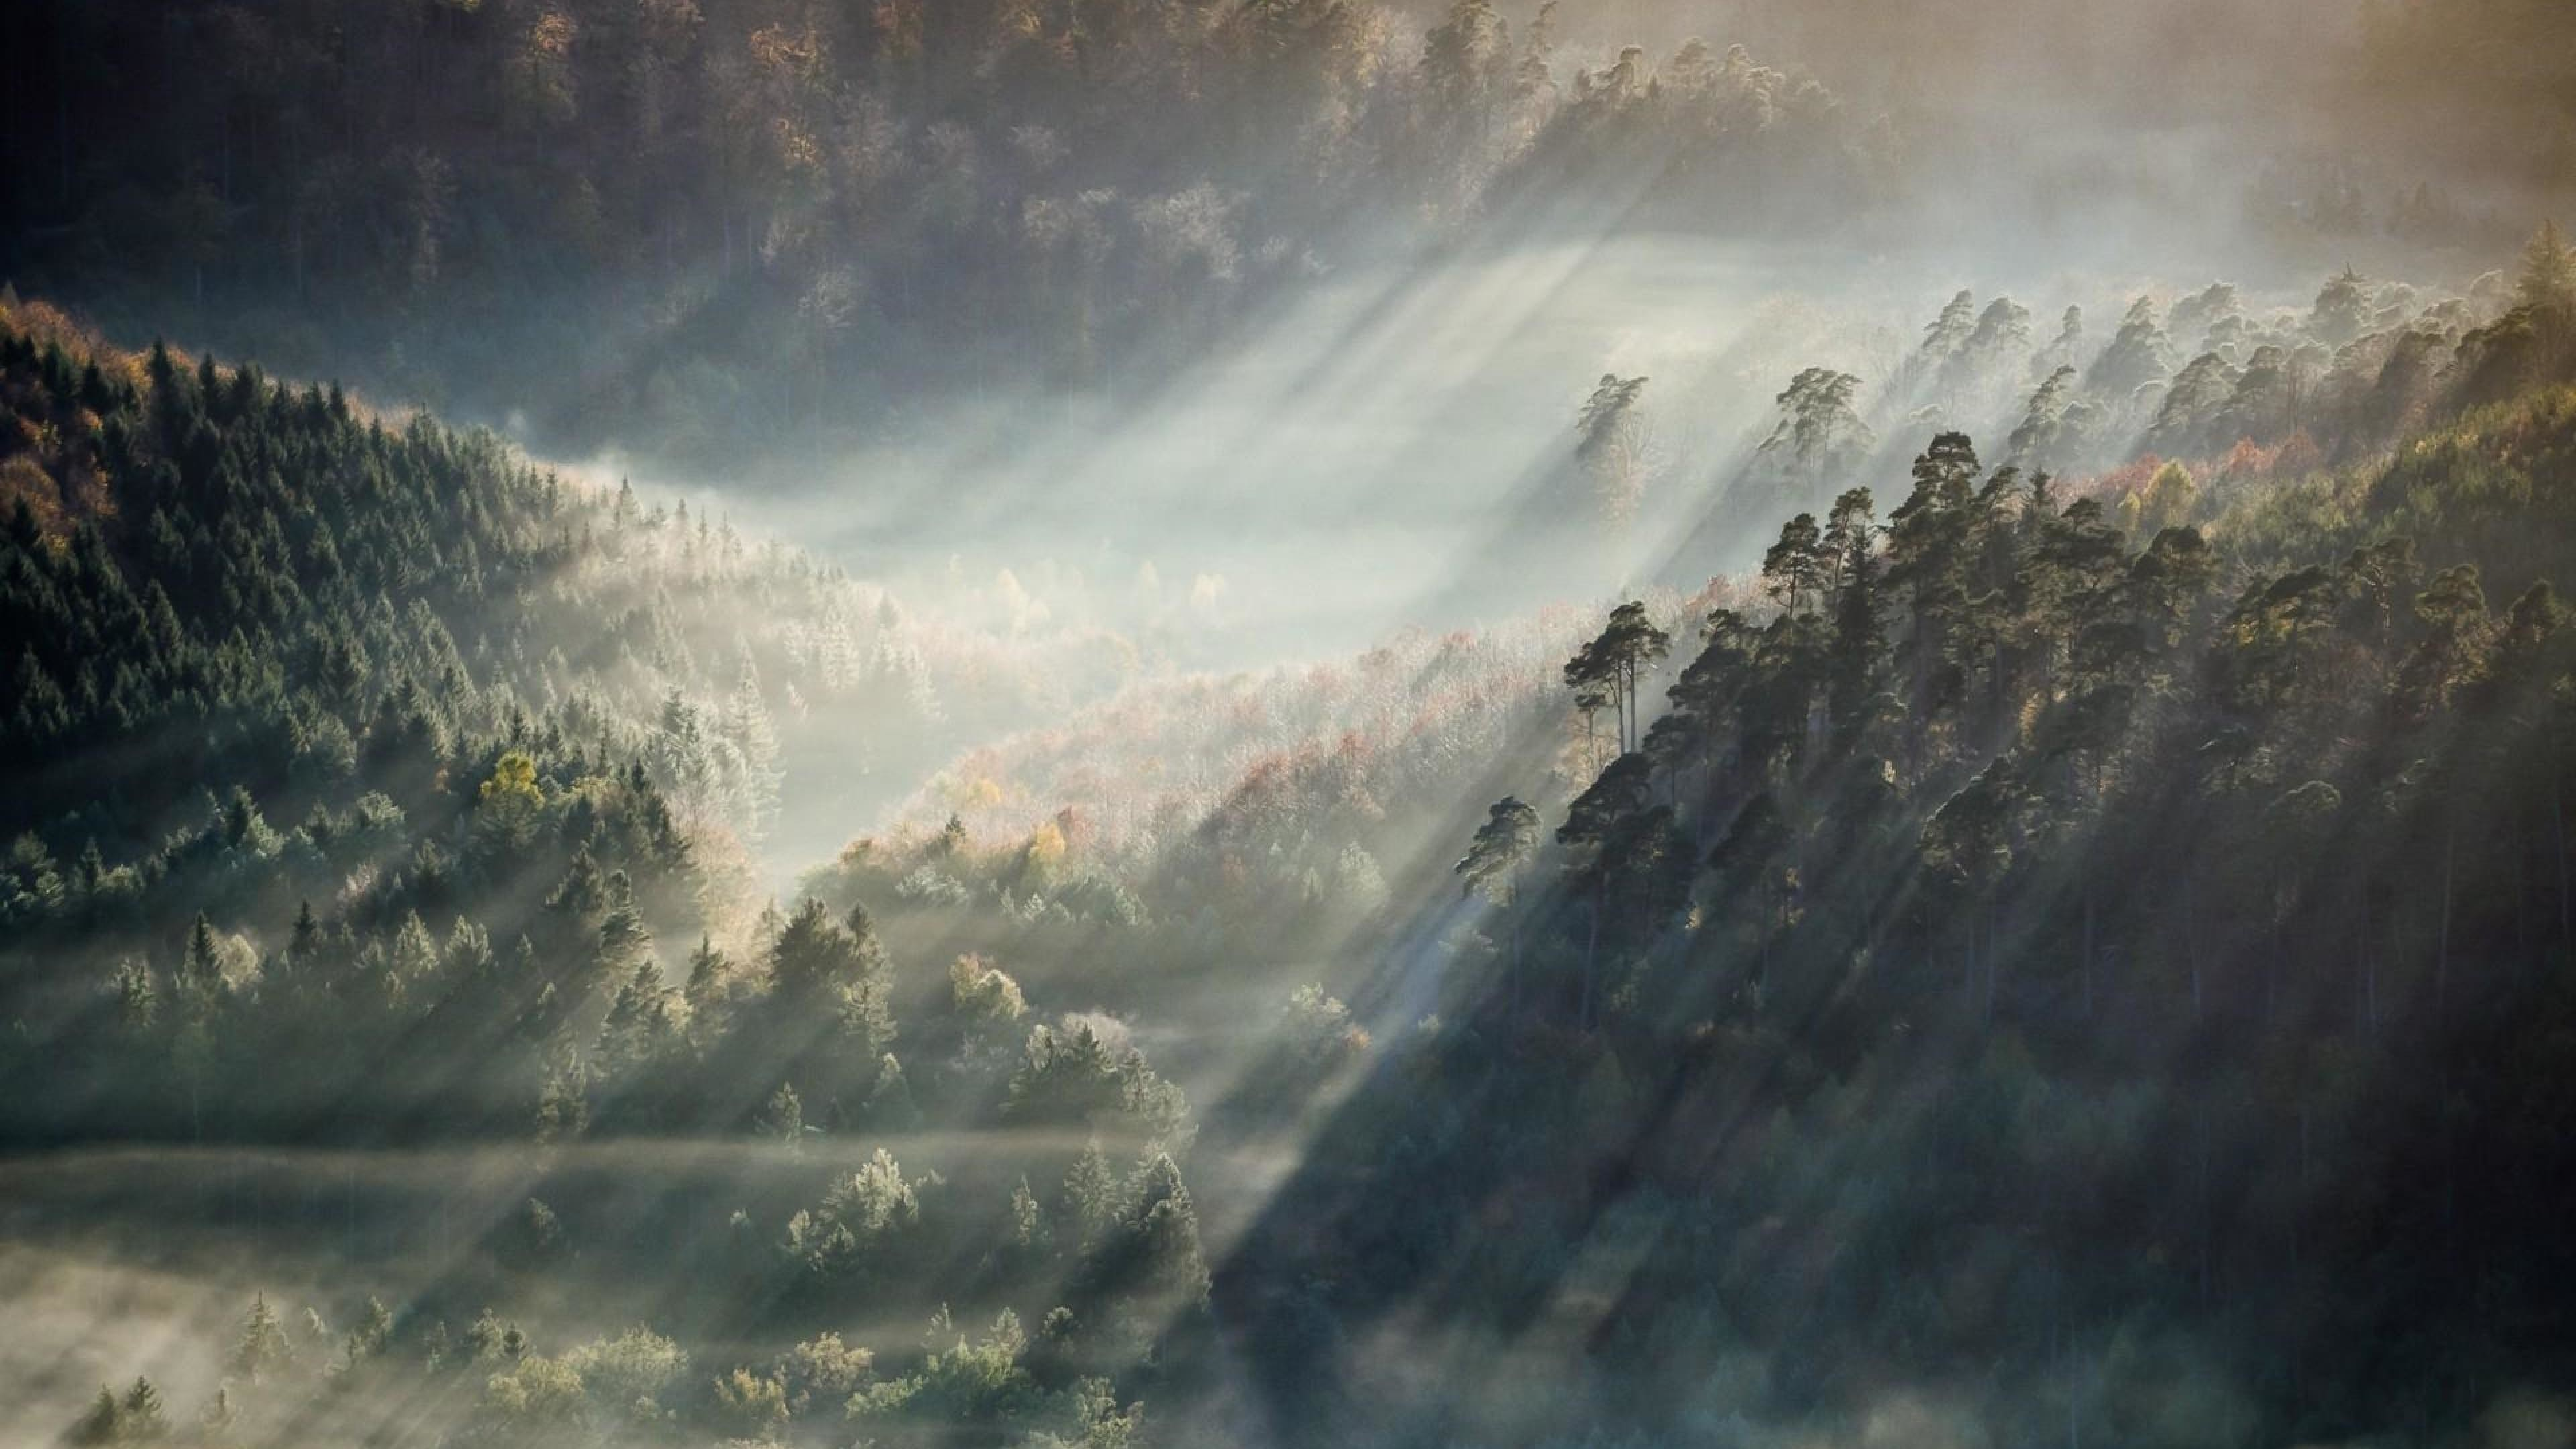 Fall Watch Wallpapers Foggy Forest Wallpaper 74 Images